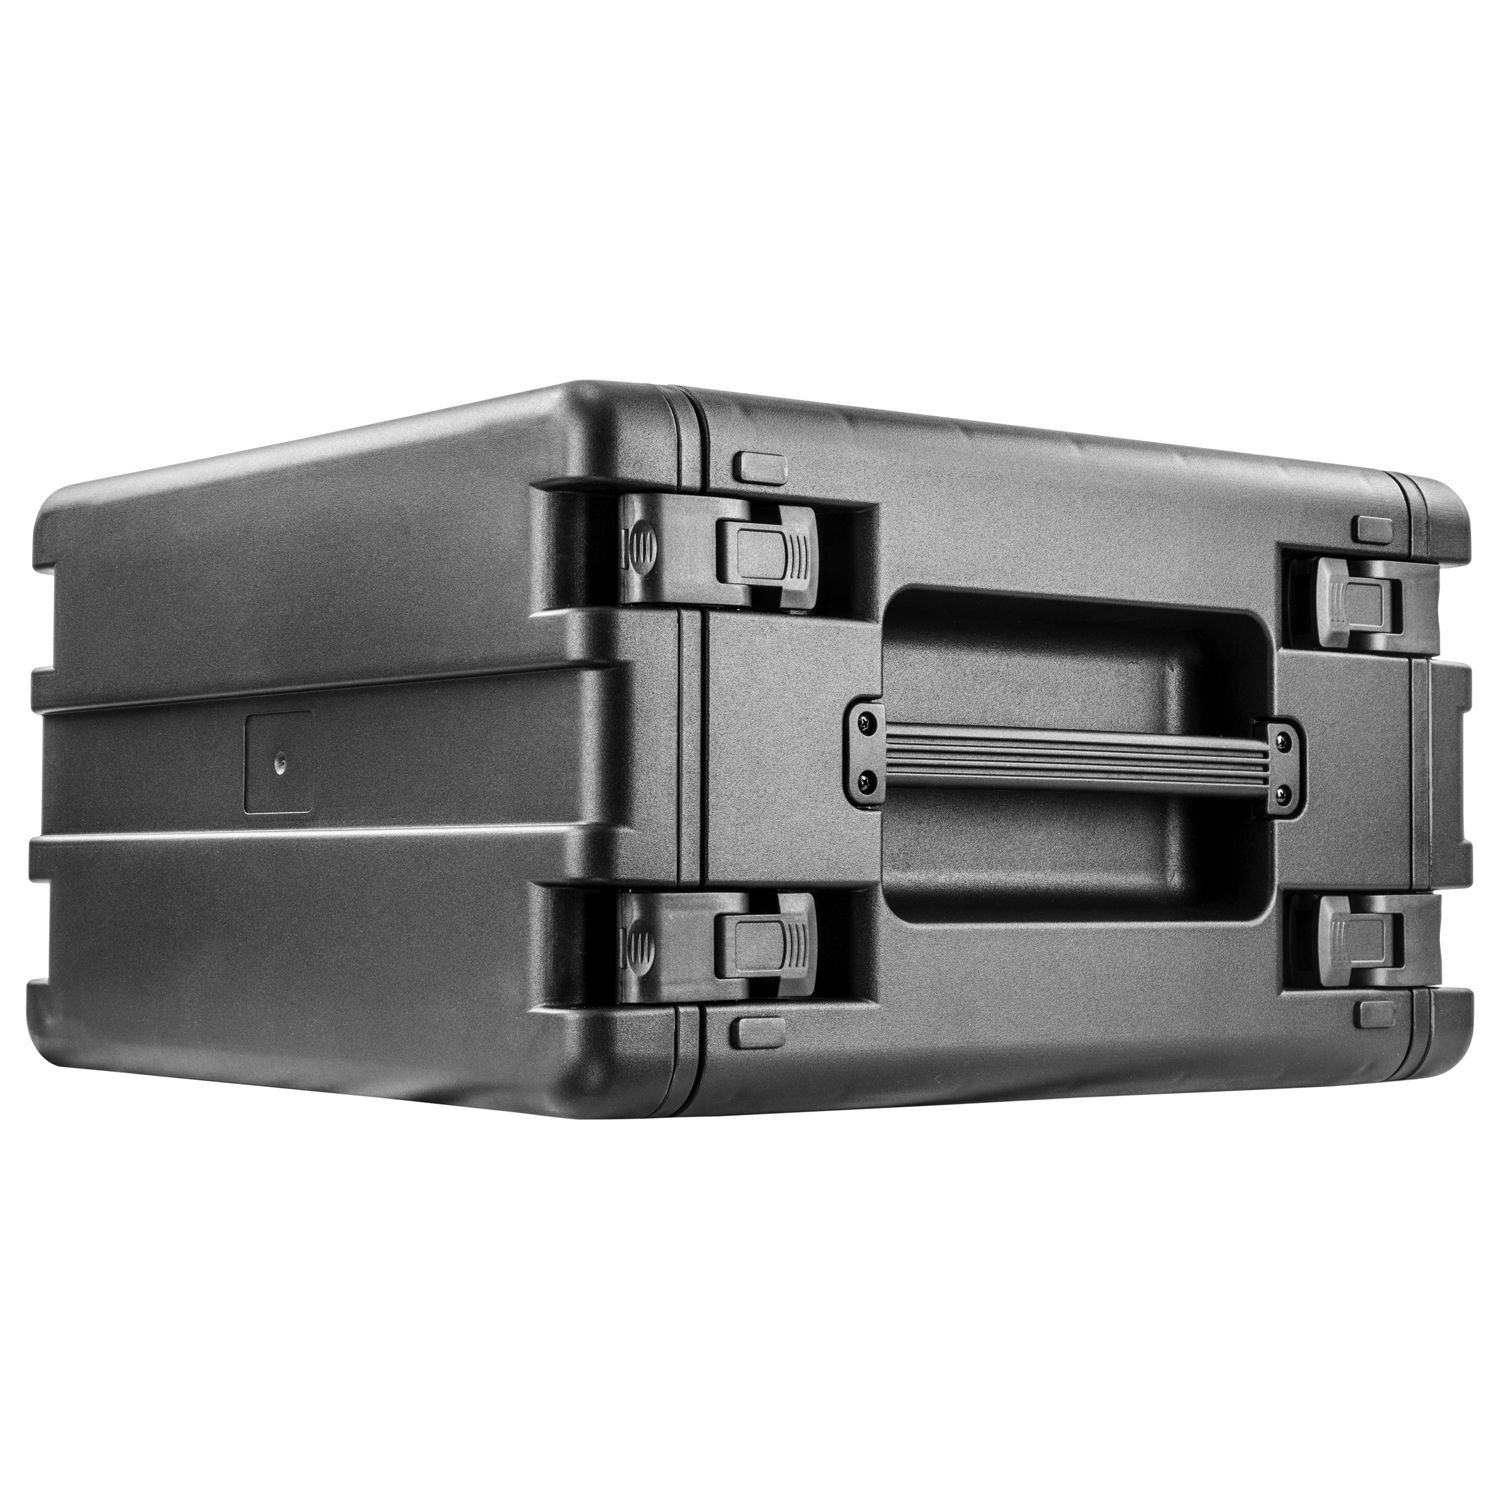 Vulcan Series 6u Rack Case Odyssey Cases Best Case